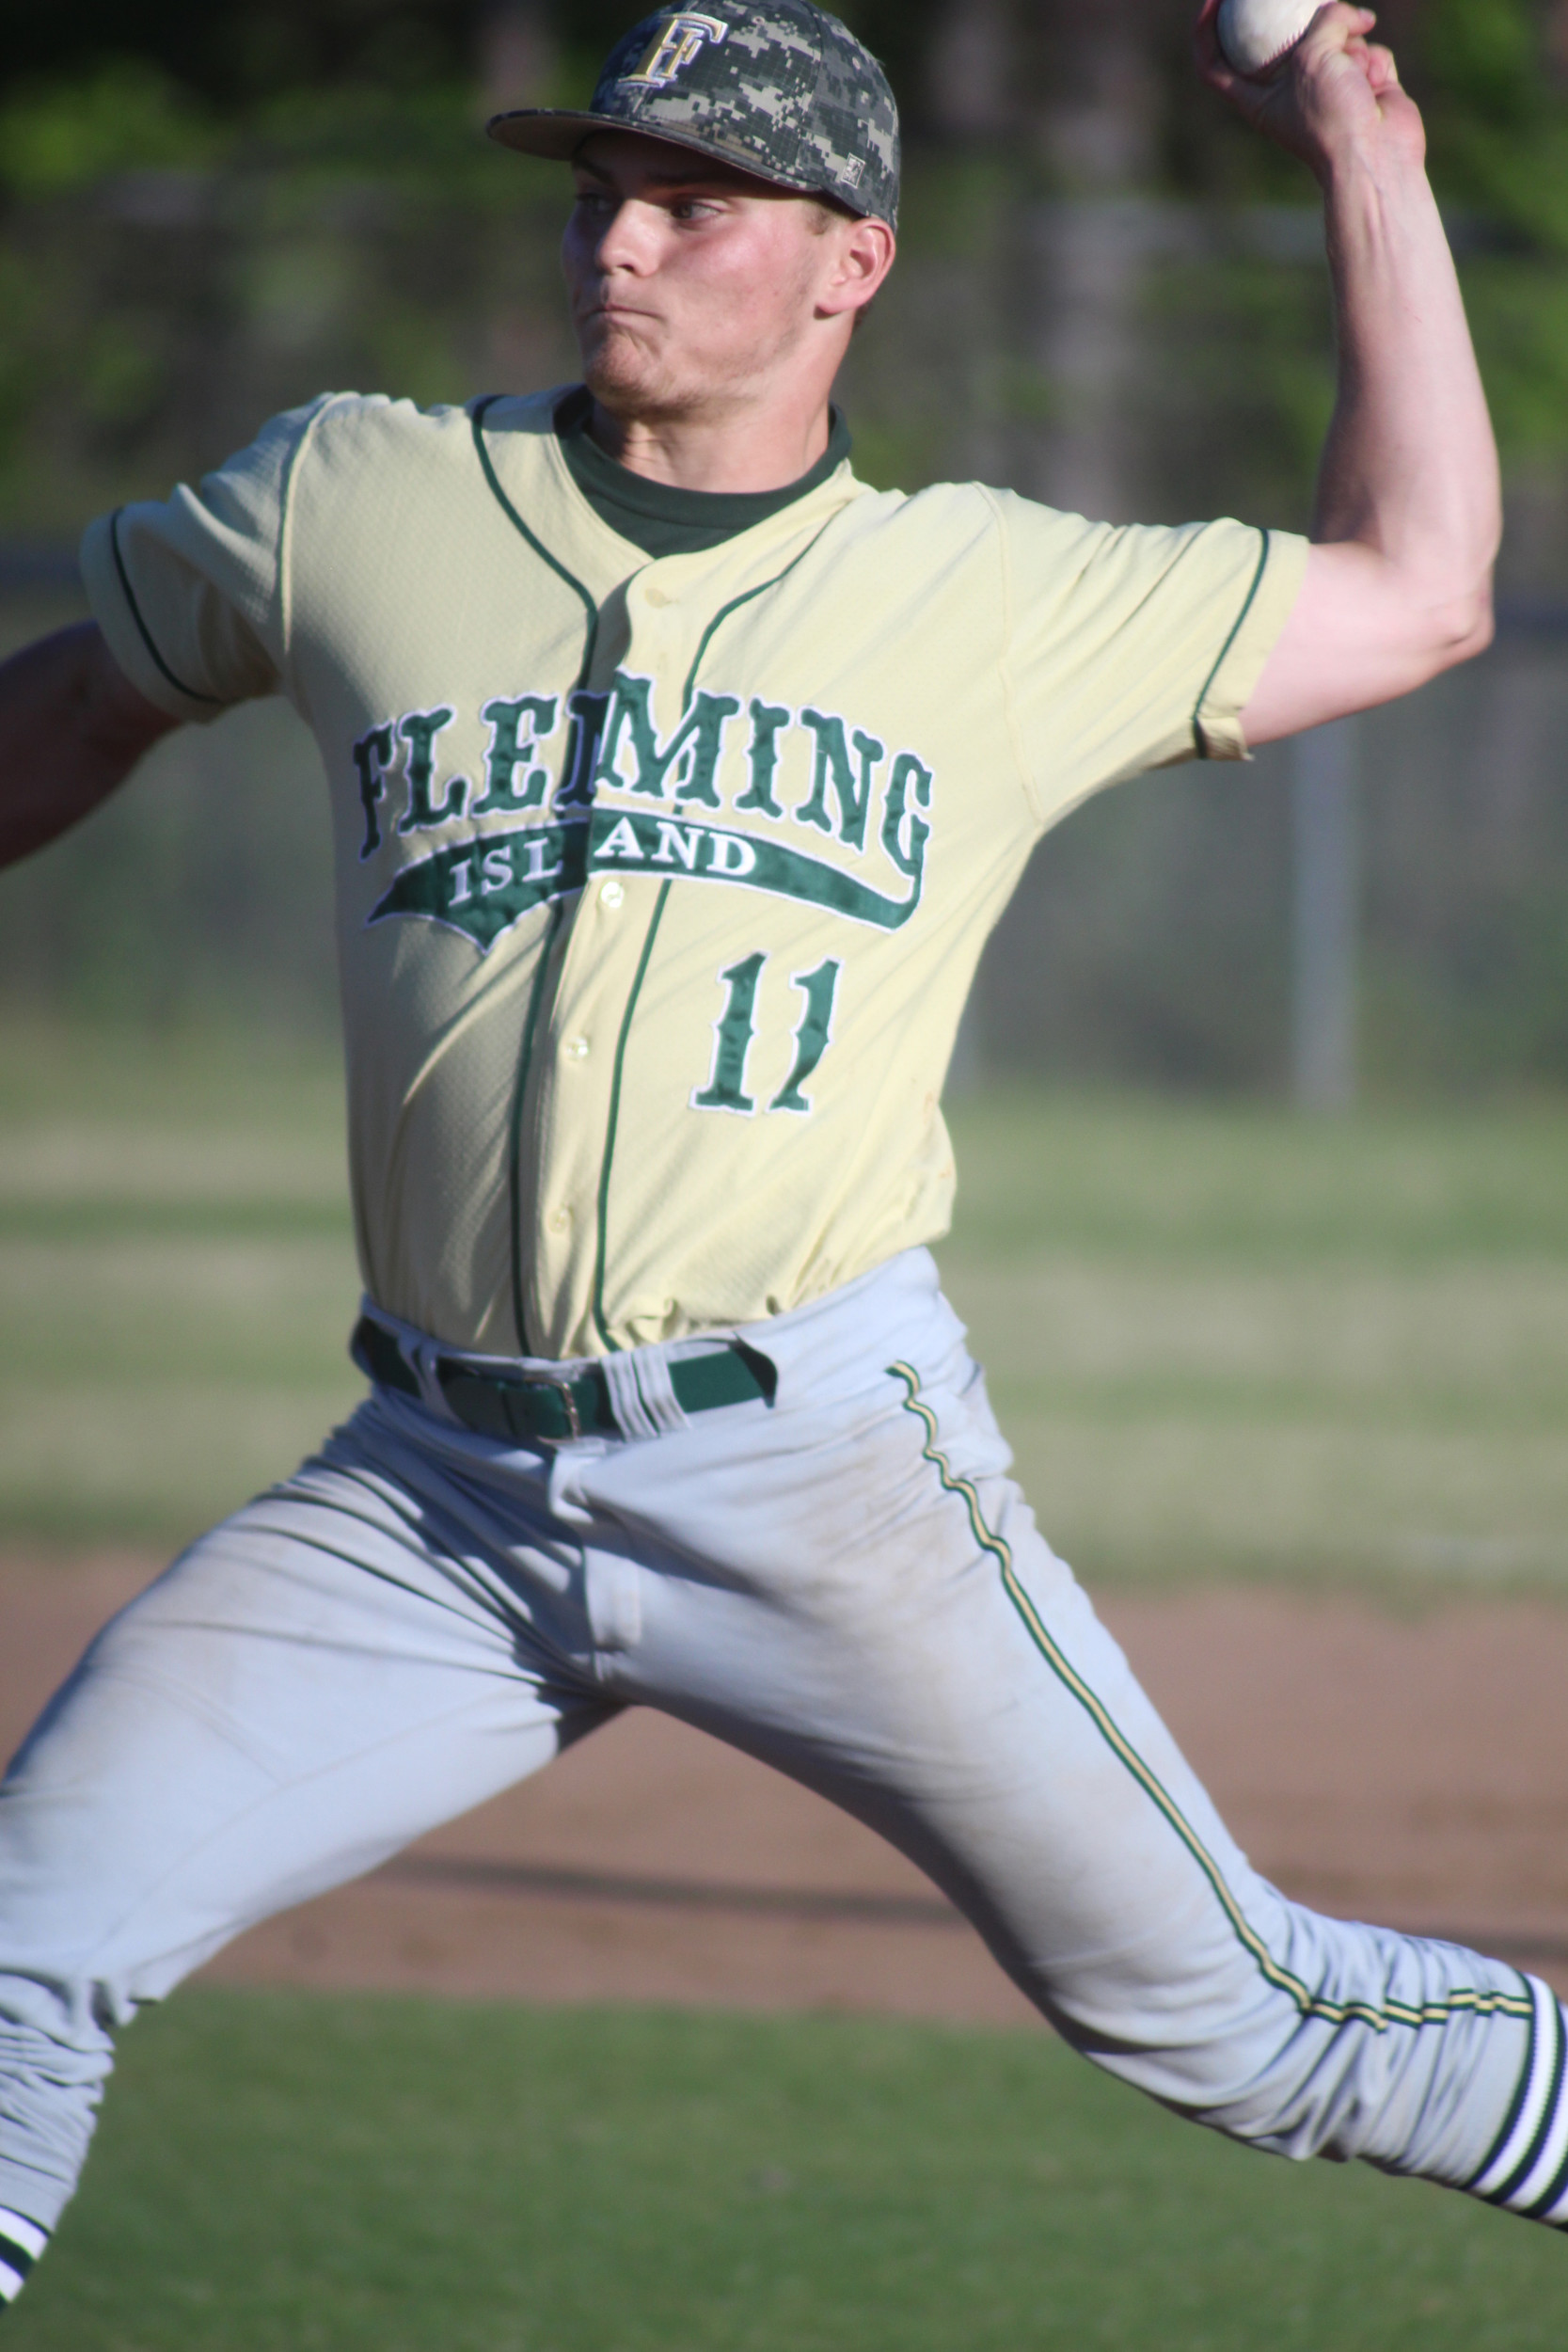 Fleming Island senior pitcher Zack Blankenship has gotten stronger as the season has progressed to lead Golden Eagles staff.